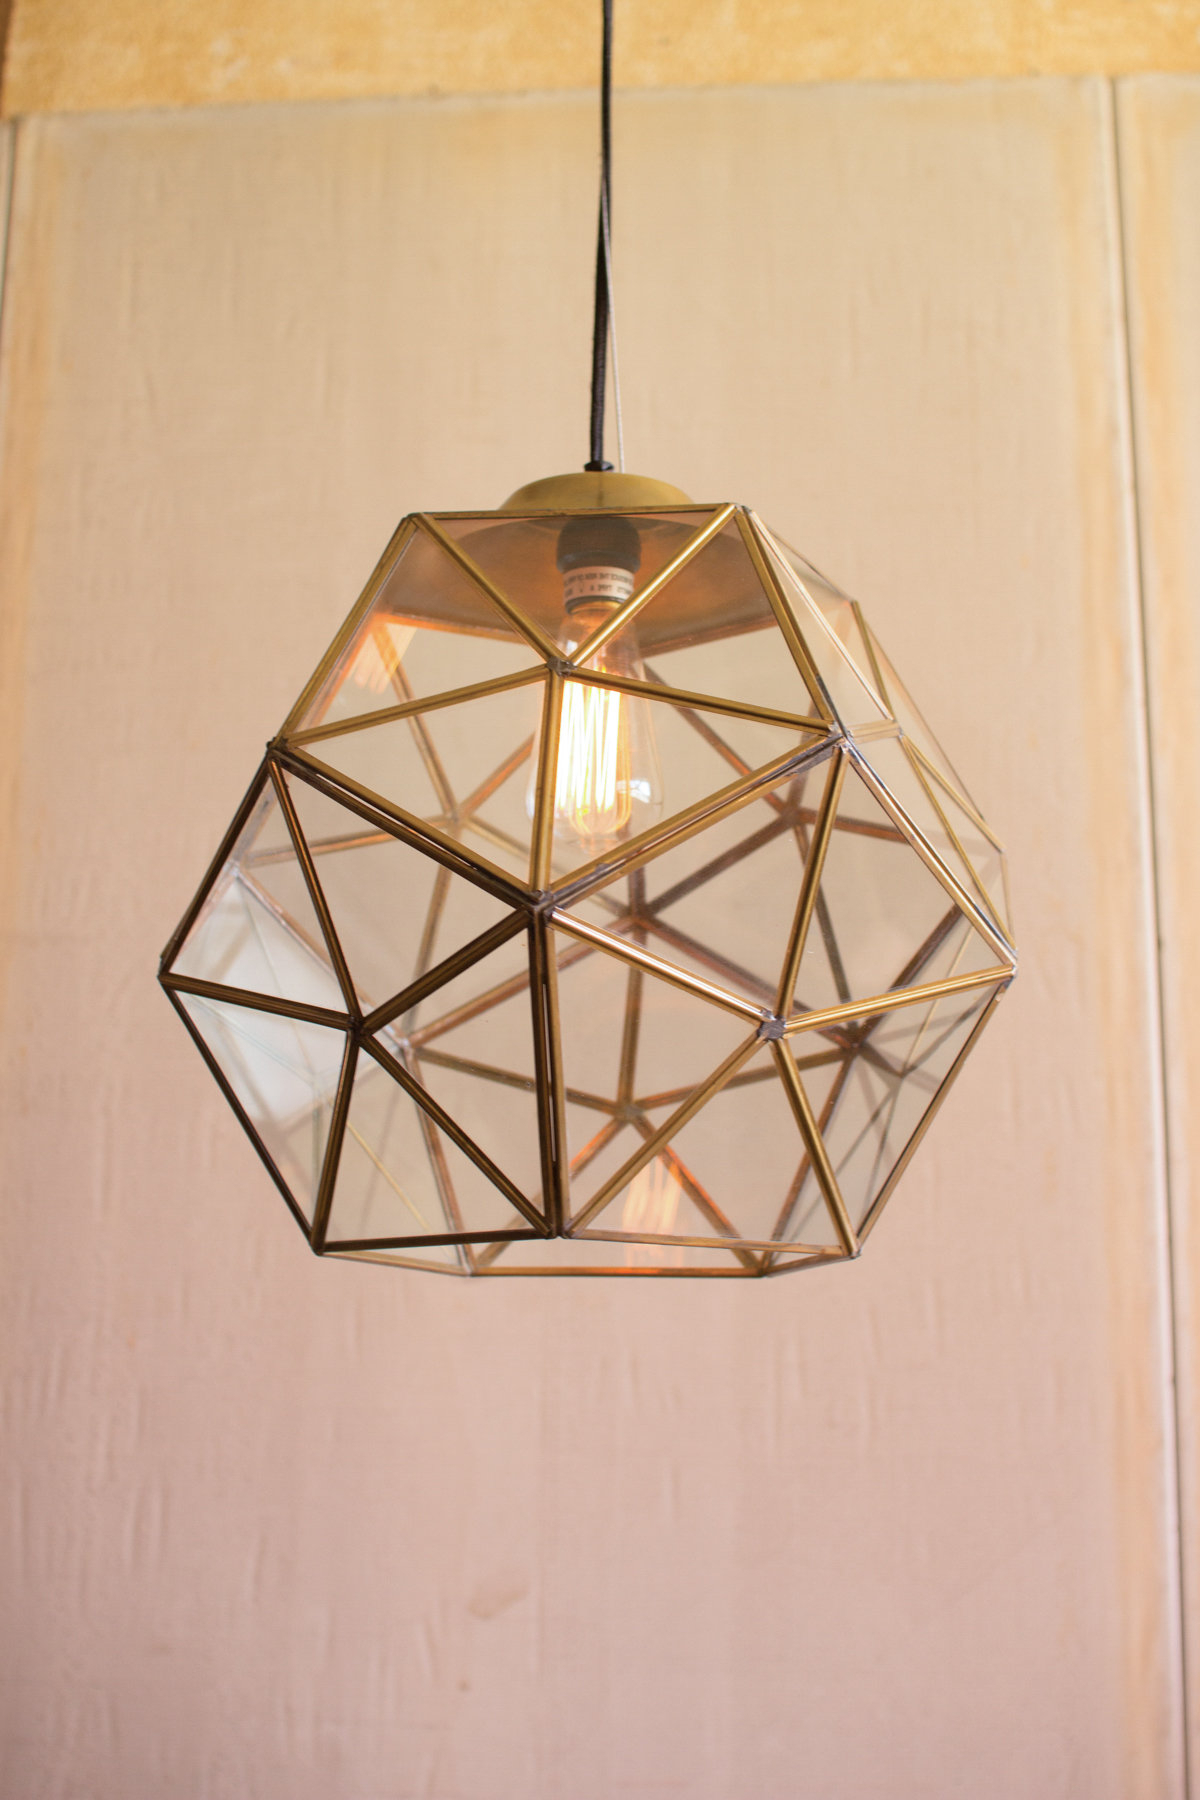 Edelman Glass 1-Light Lantern Pendant pertaining to Most Up-to-Date Delon 1-Light Lantern Geometric Pendants